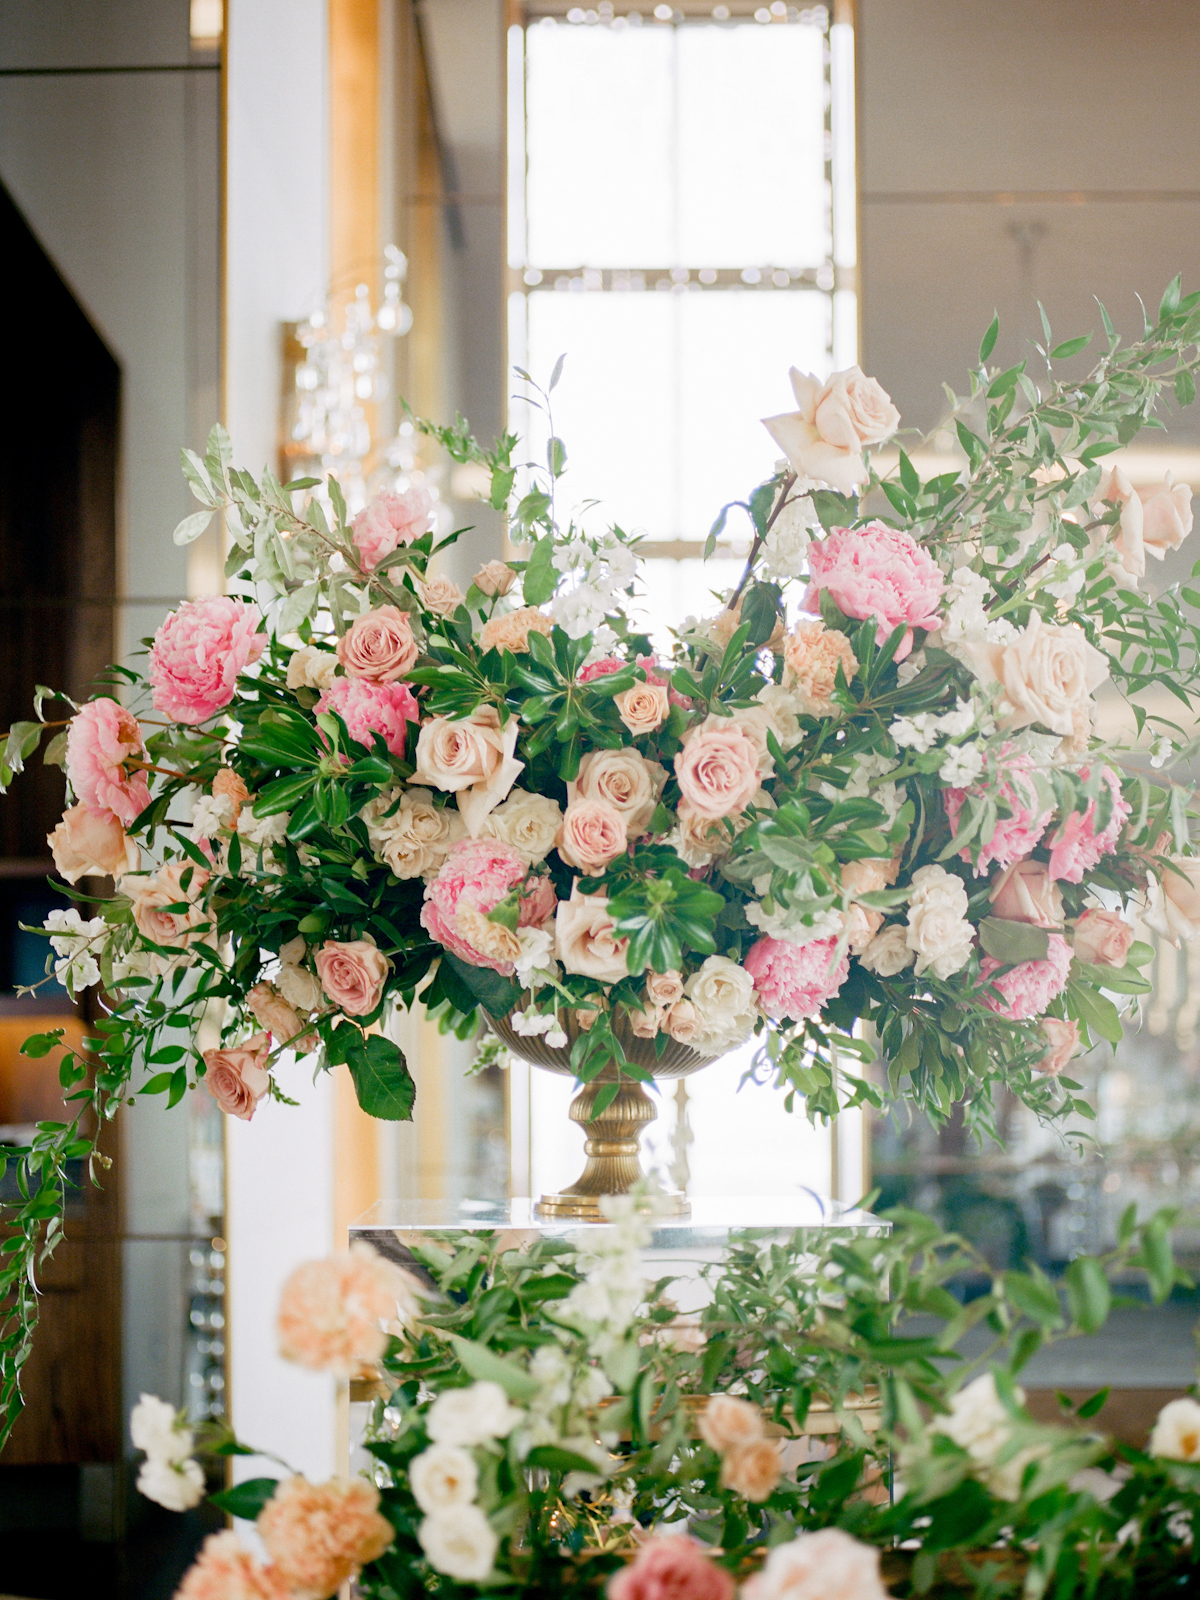 Flowers at Rainbow Room wedding with roses